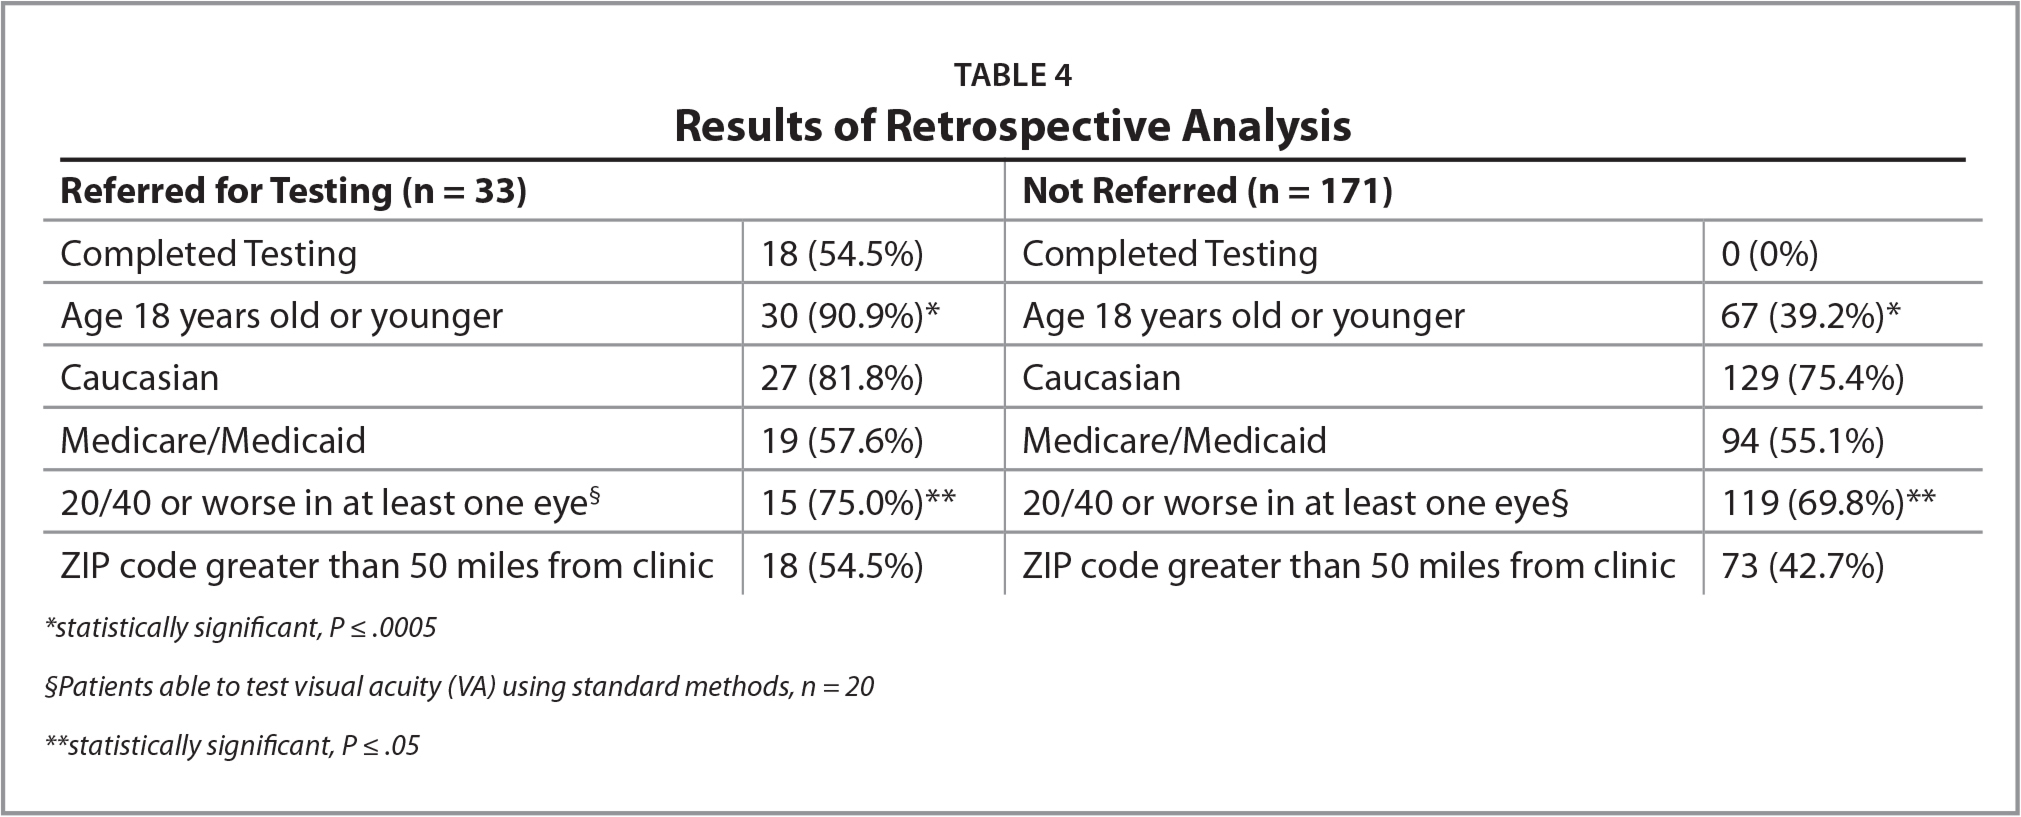 Results of Retrospective Analysis